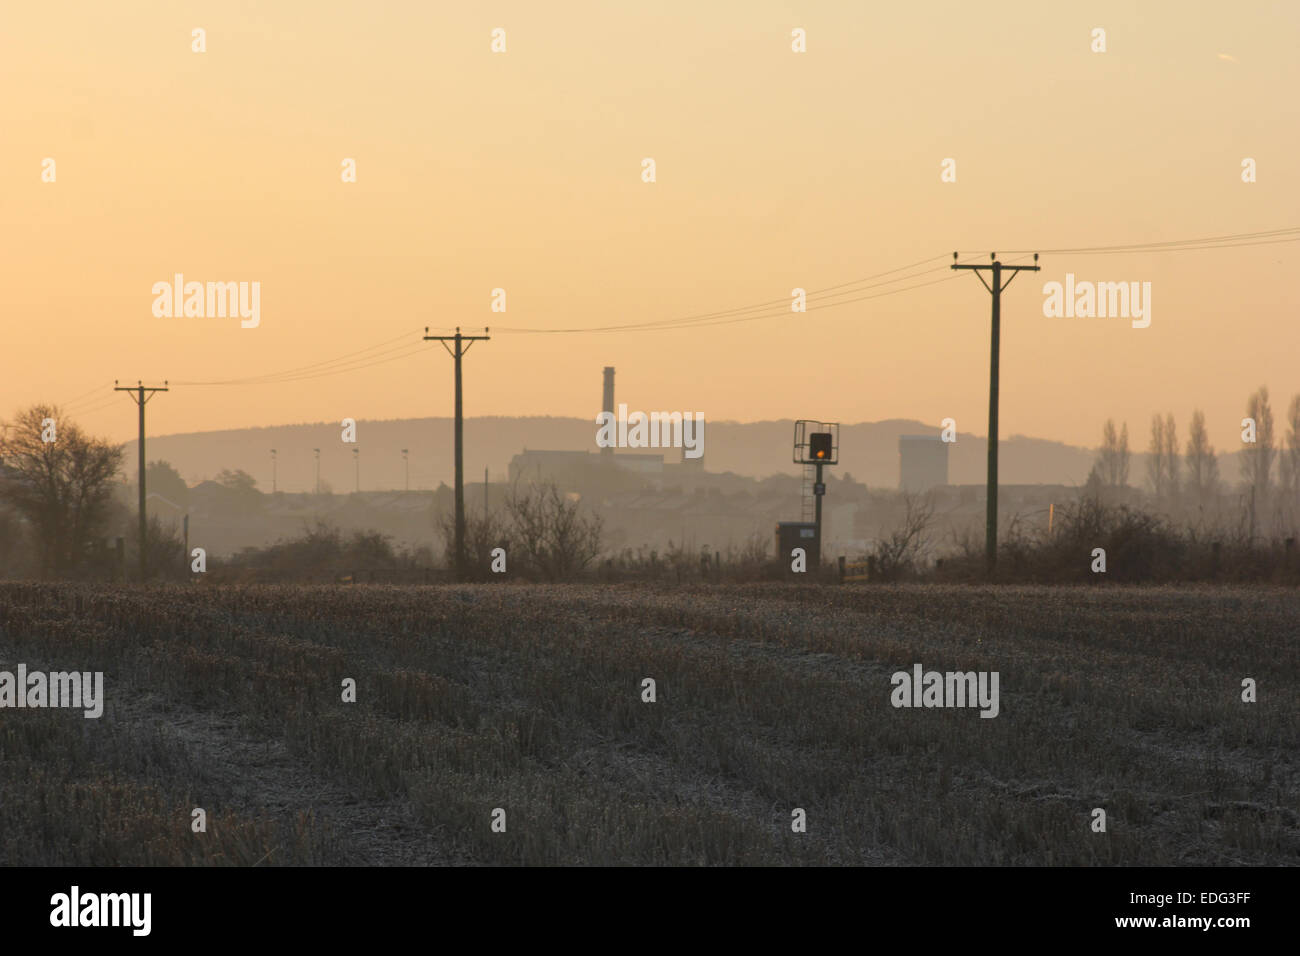 A March morning in 2013 and the early morning sun dawns over the village of Burscough in West Lancashire. - Stock Image